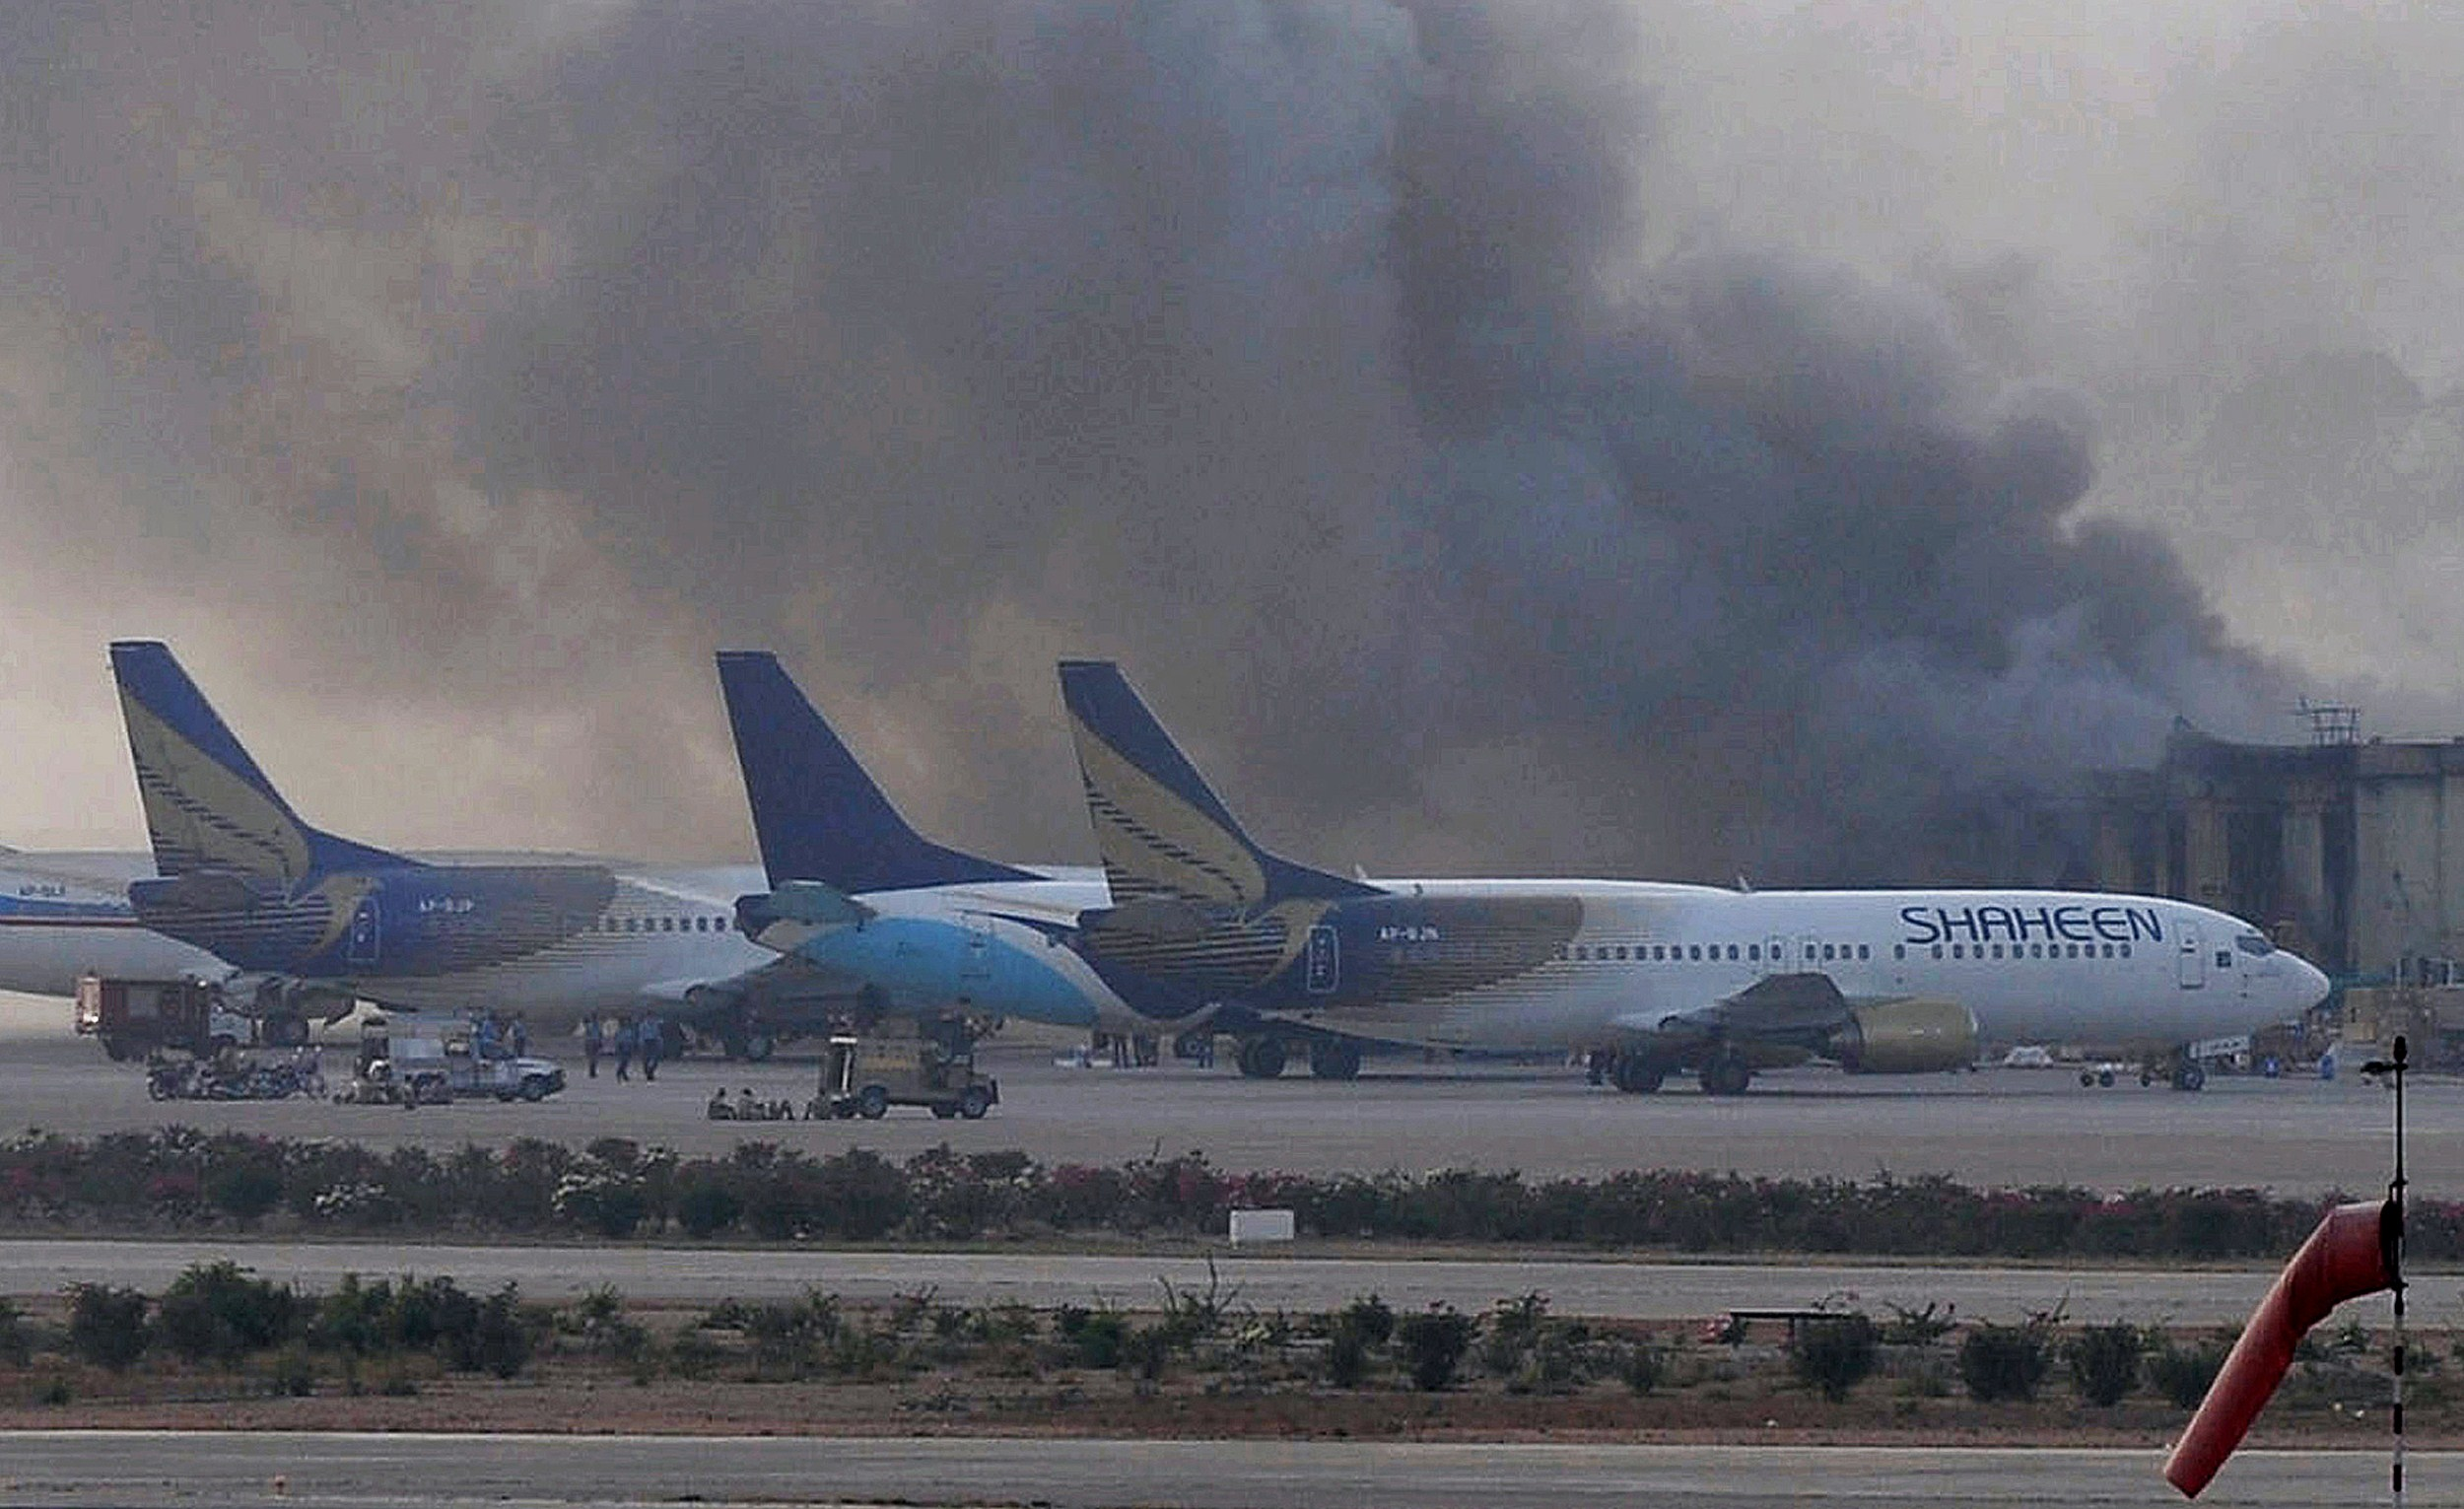 Smoke rises after militants launched an early morning assault at Jinnah International Airport in Karachi, Pakistan on June 9, 2014.